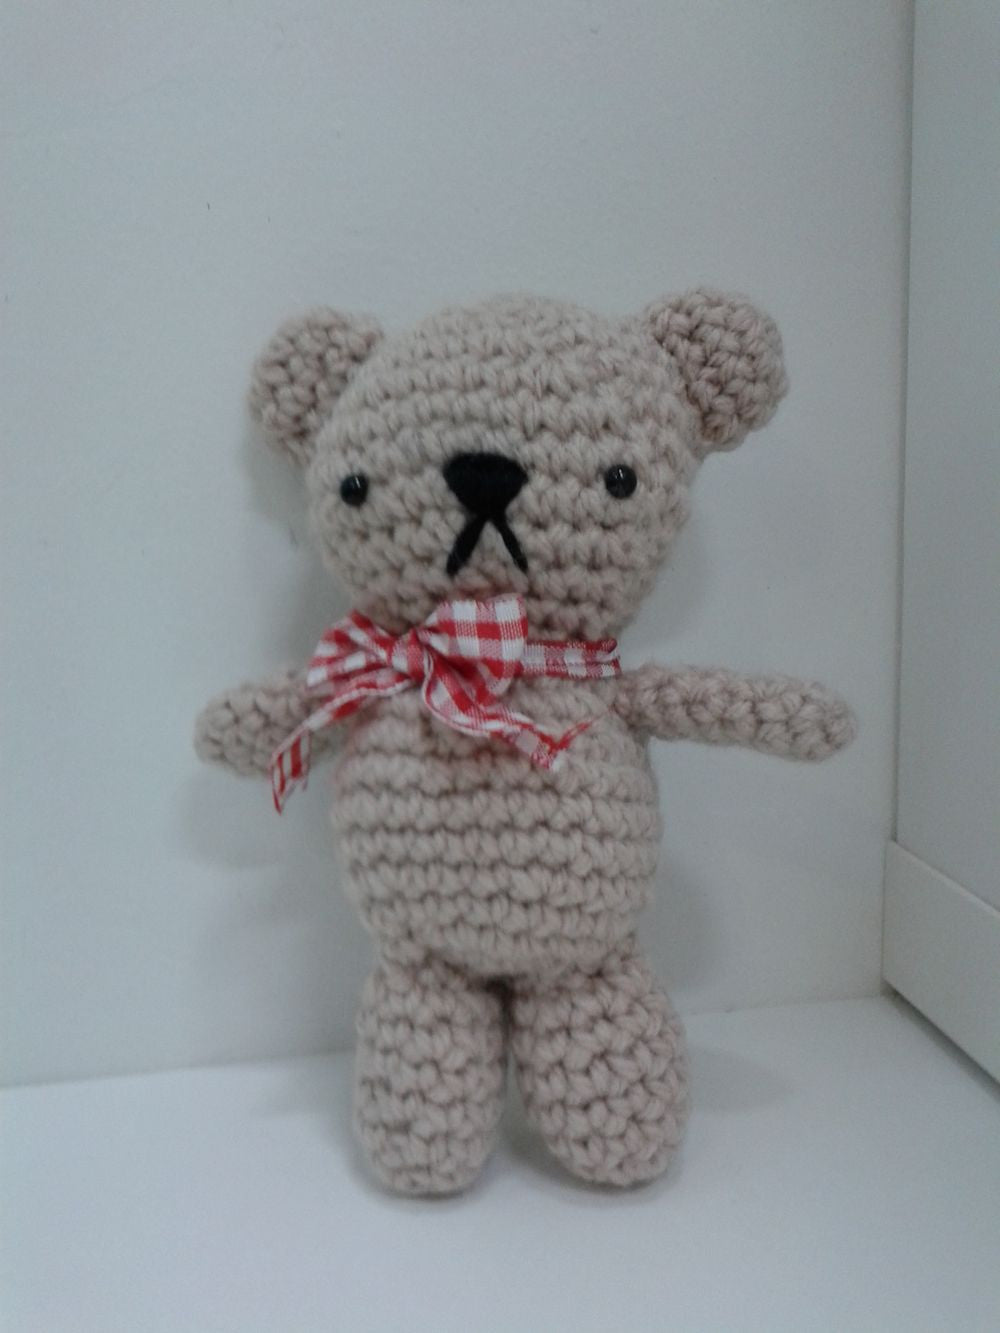 Guided Craft Project-Crochet a Teddy Bear